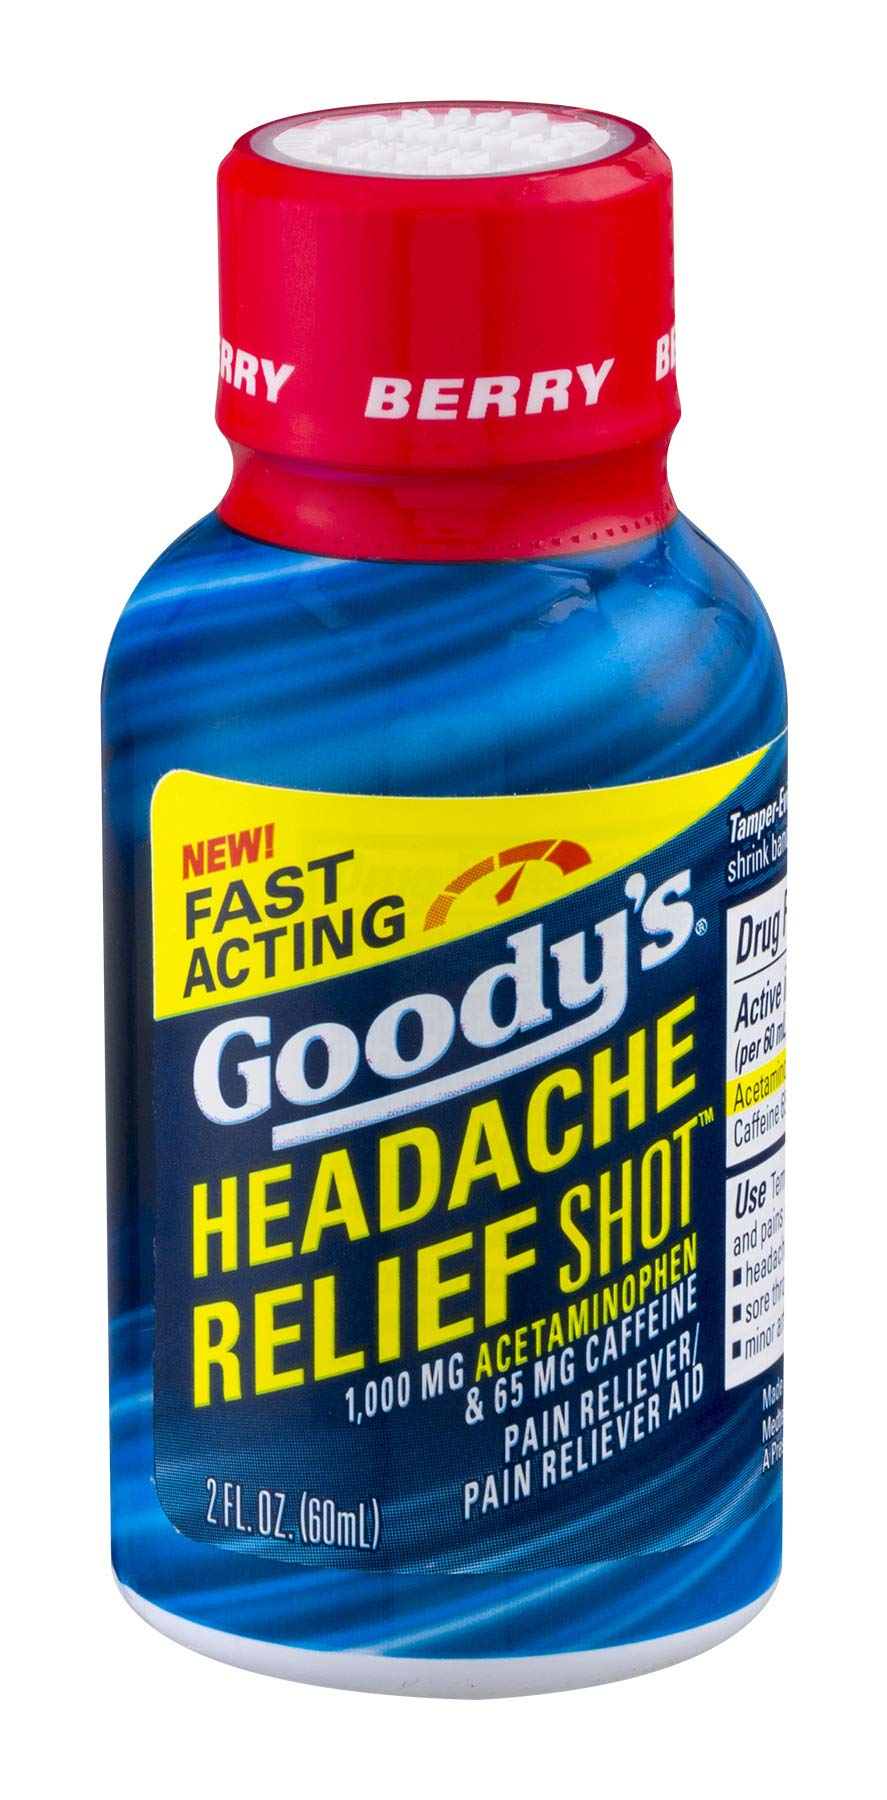 Goody's Headache Relief Shots | Berry Flavor | 9 Shots | 2 oz per Shot | Fast Liquid Action for Long Lasting Relief by Goody's